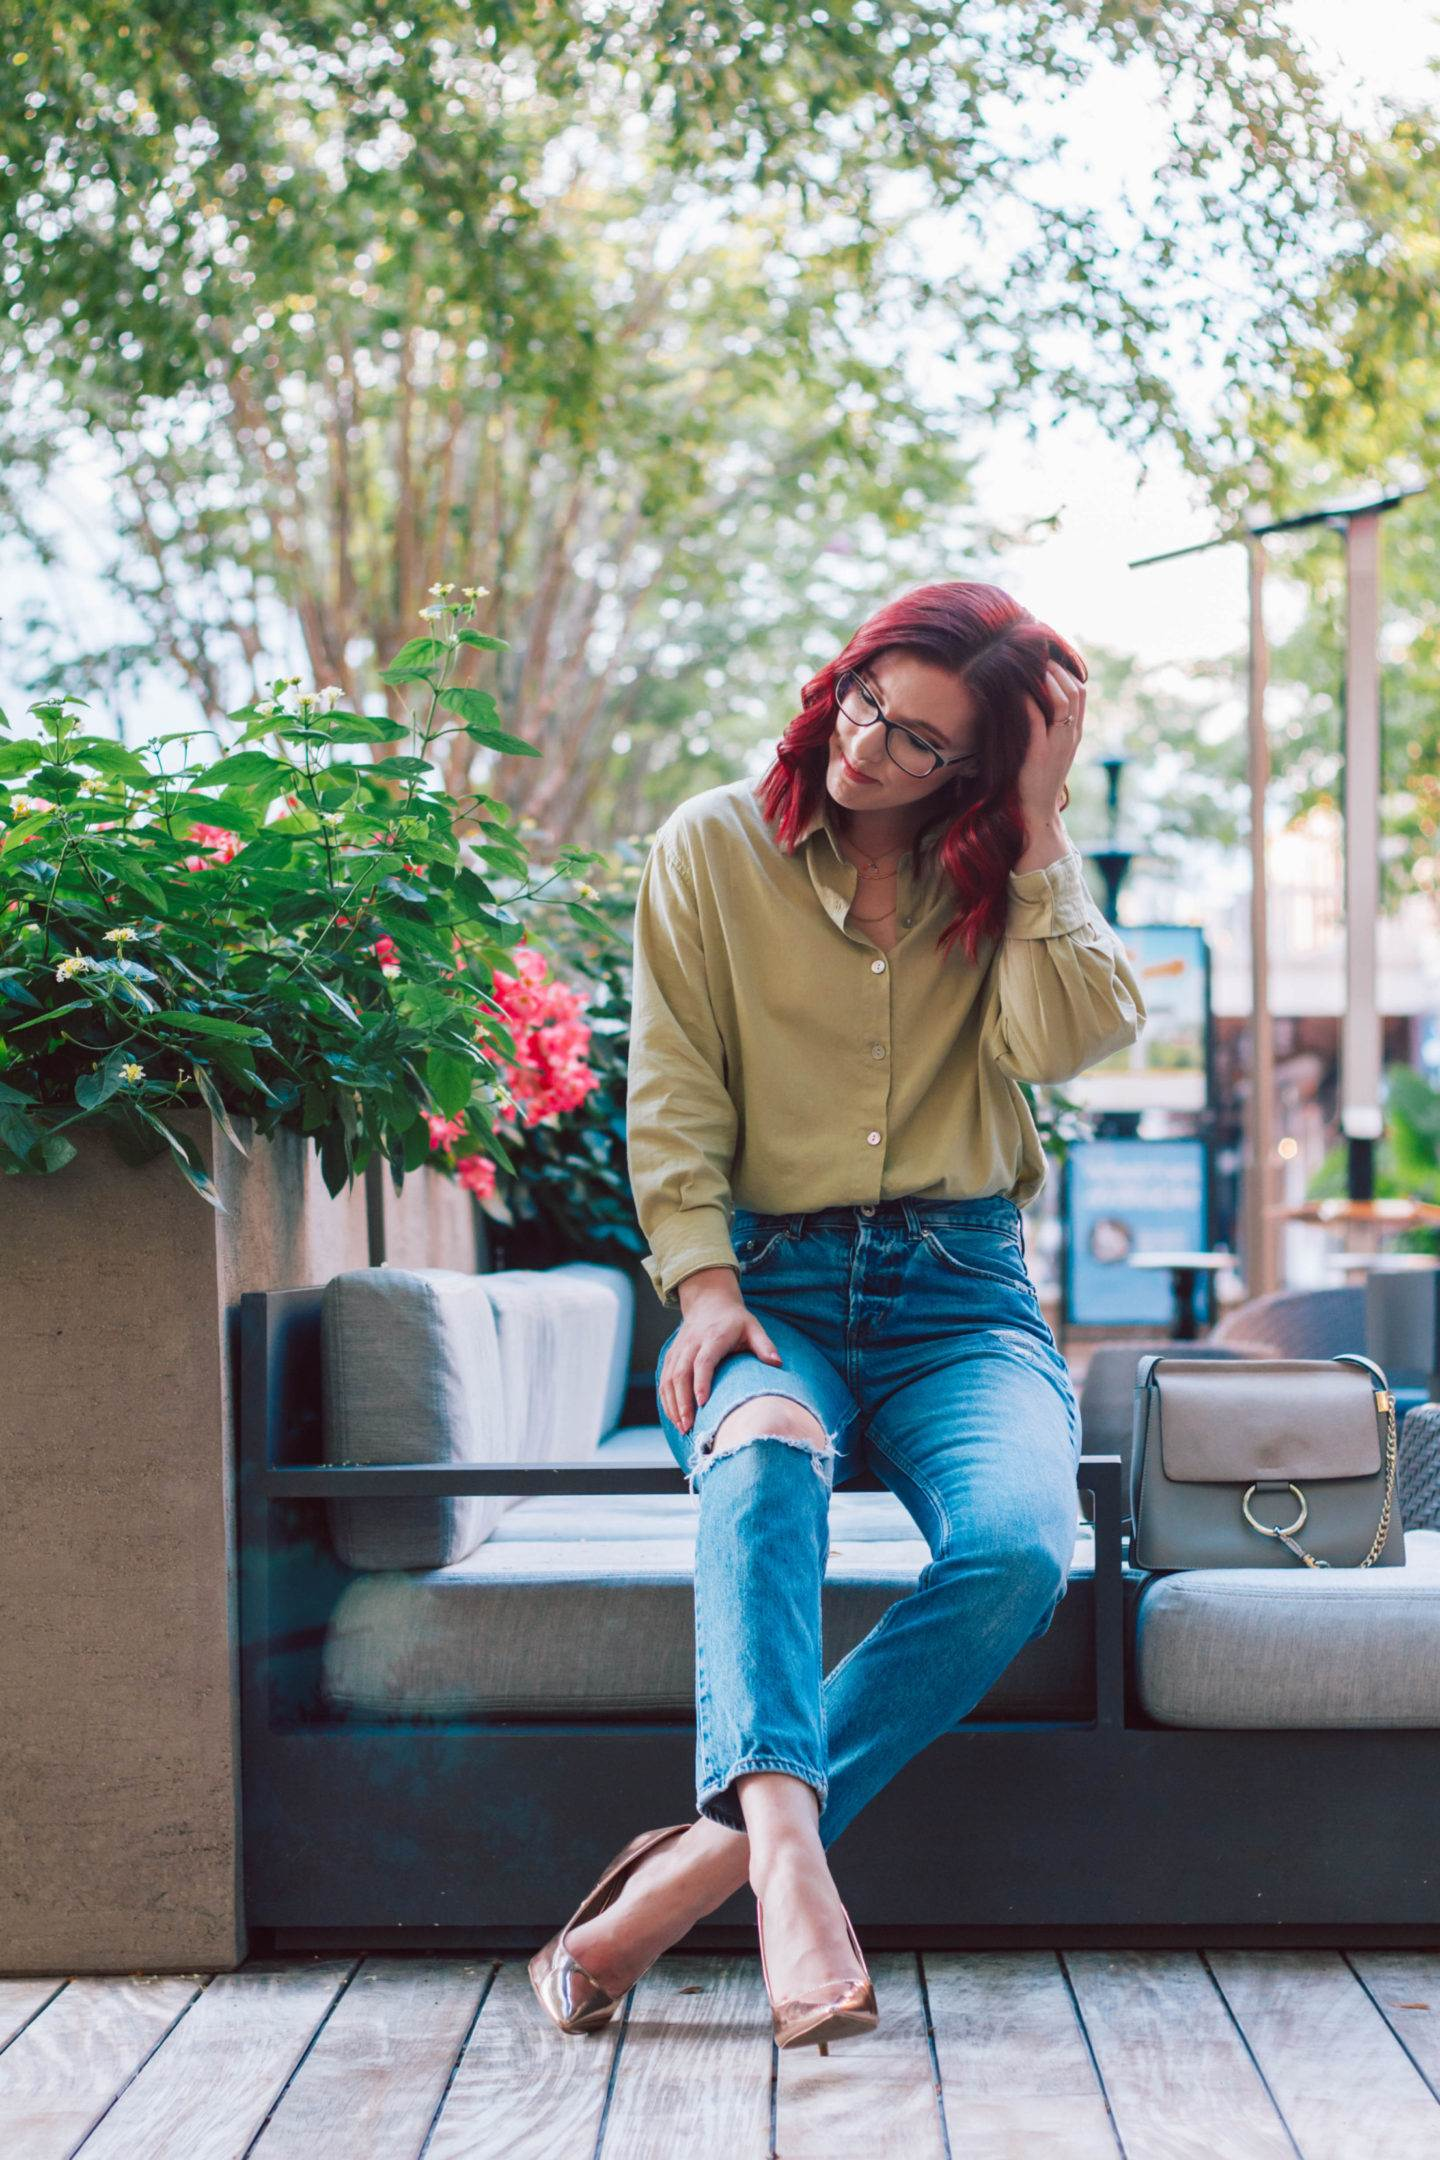 The Perfect Casual Friday Outfit Idea for Fall | She Saw Style